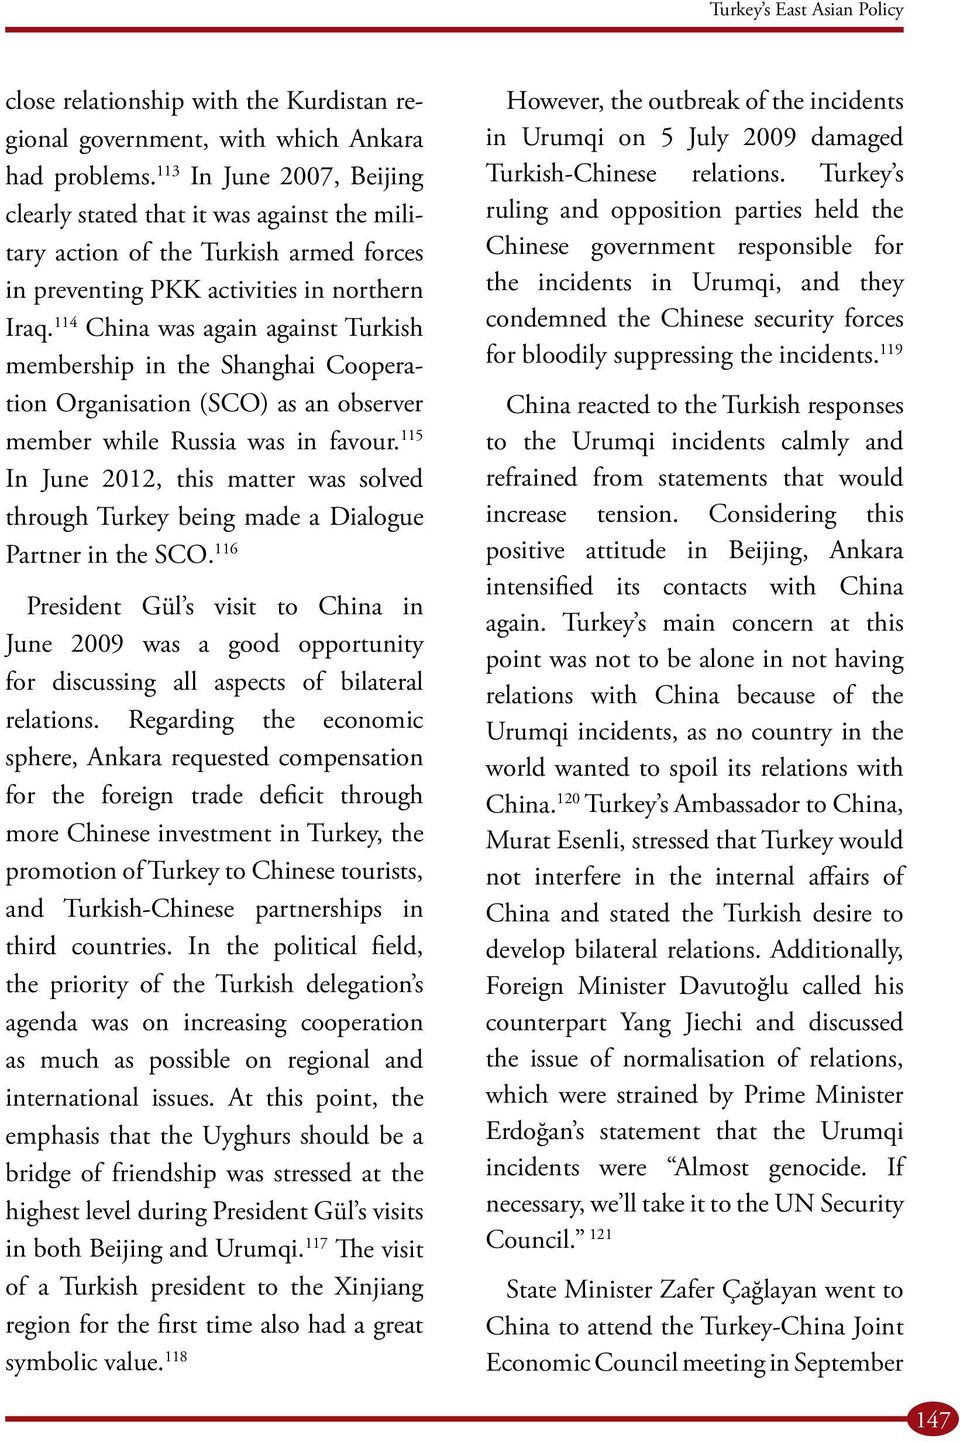 114 China was again against Turkish membership in the Shanghai Cooperation Organisation (SCO) as an observer member while Russia was in favour.